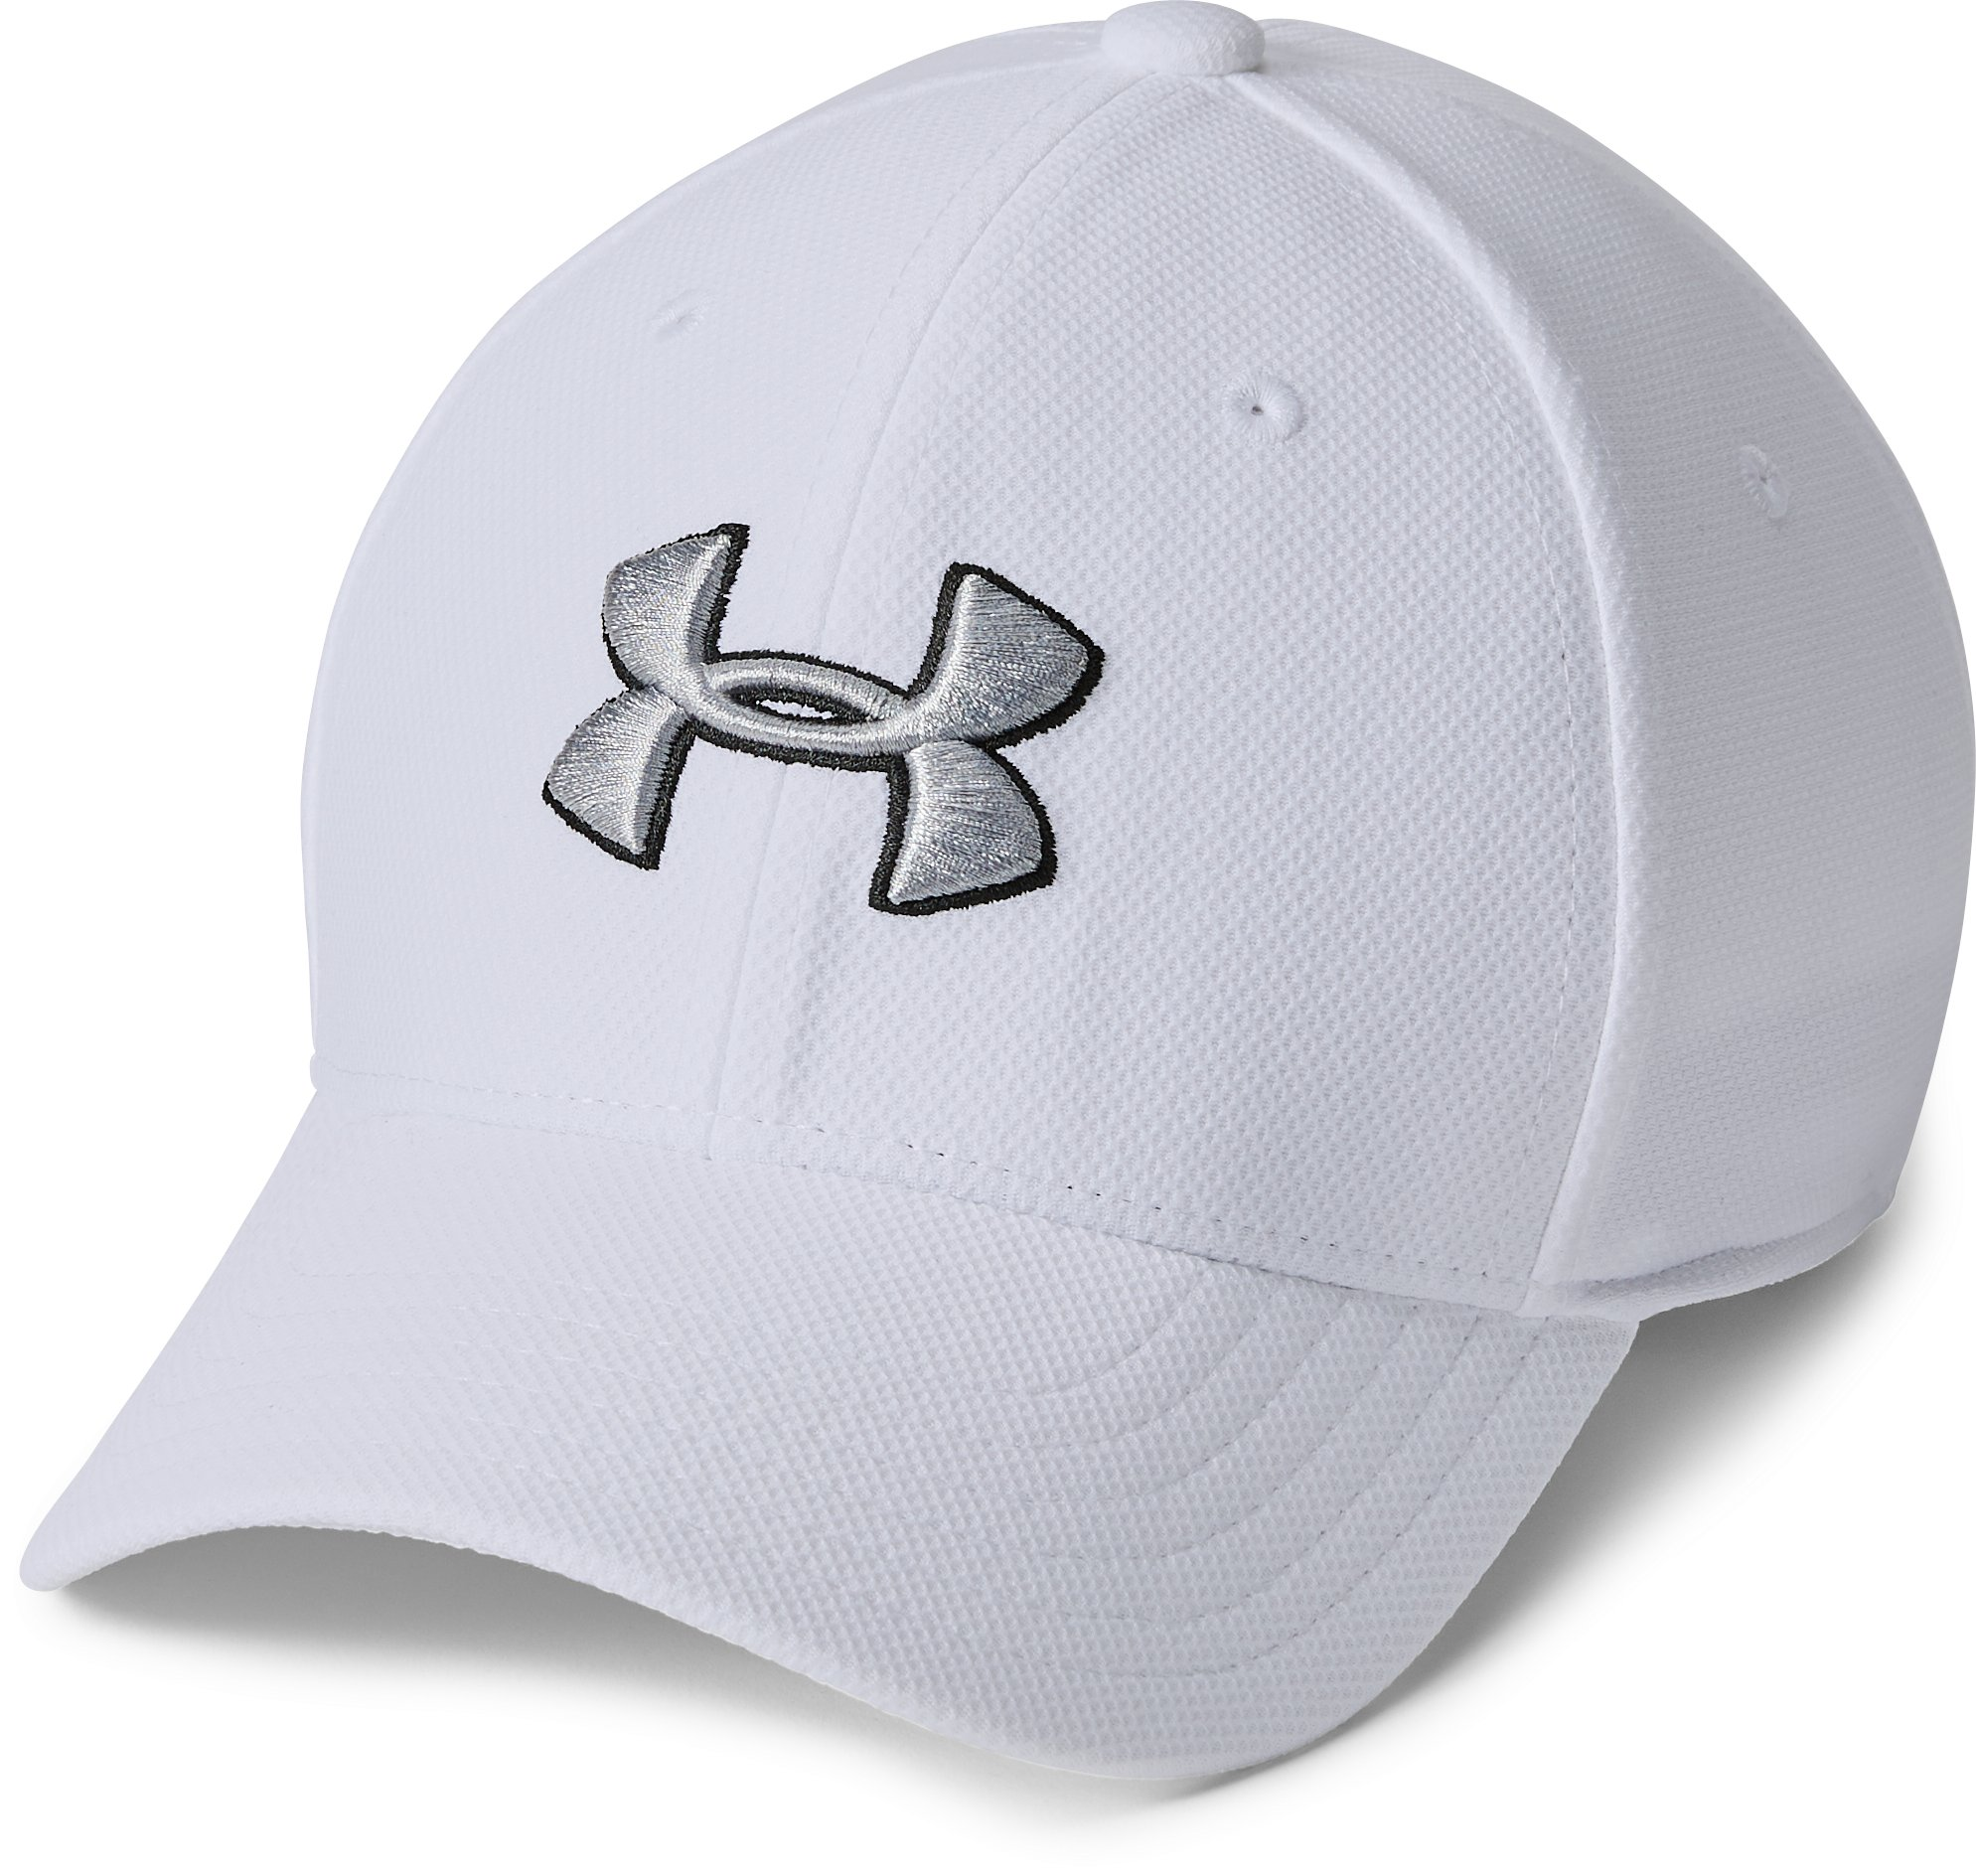 white crown caps Boys' UA Blitzing 3.0 Cap Stretch construction provides a <strong>comfortable fit</strong>.